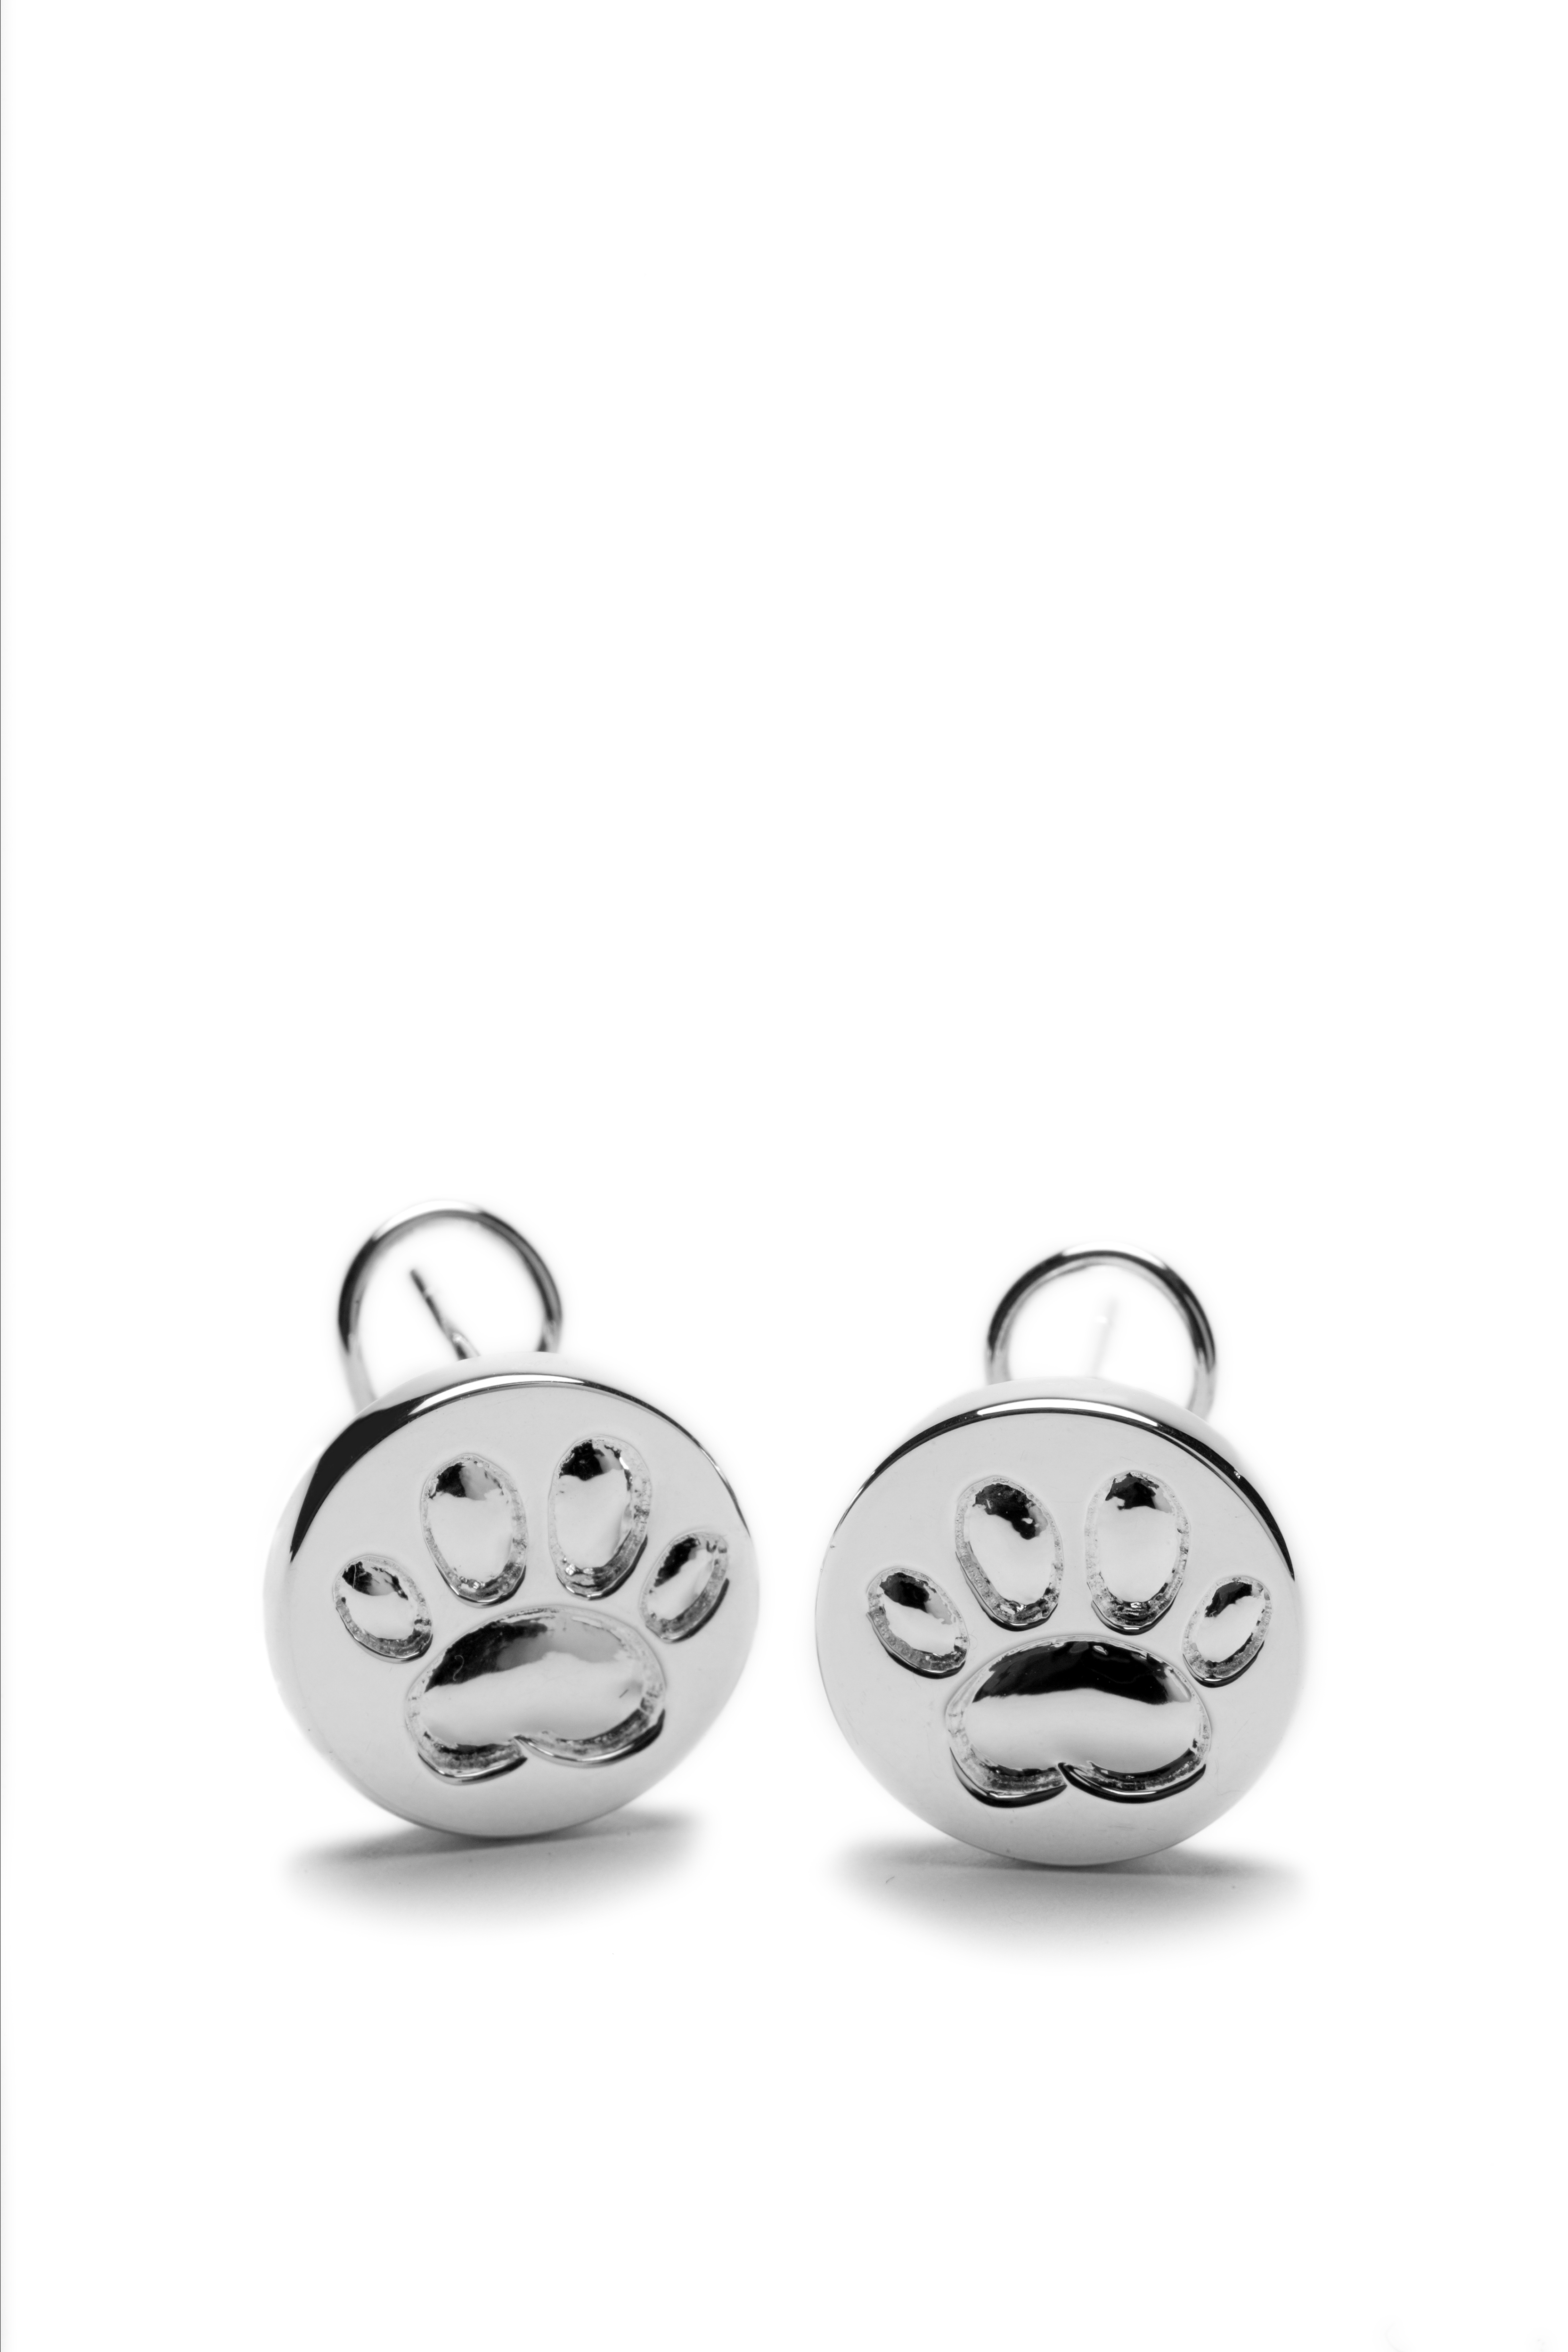 Silver Paw Cavachons: Sterling Silver Paw Print Earring